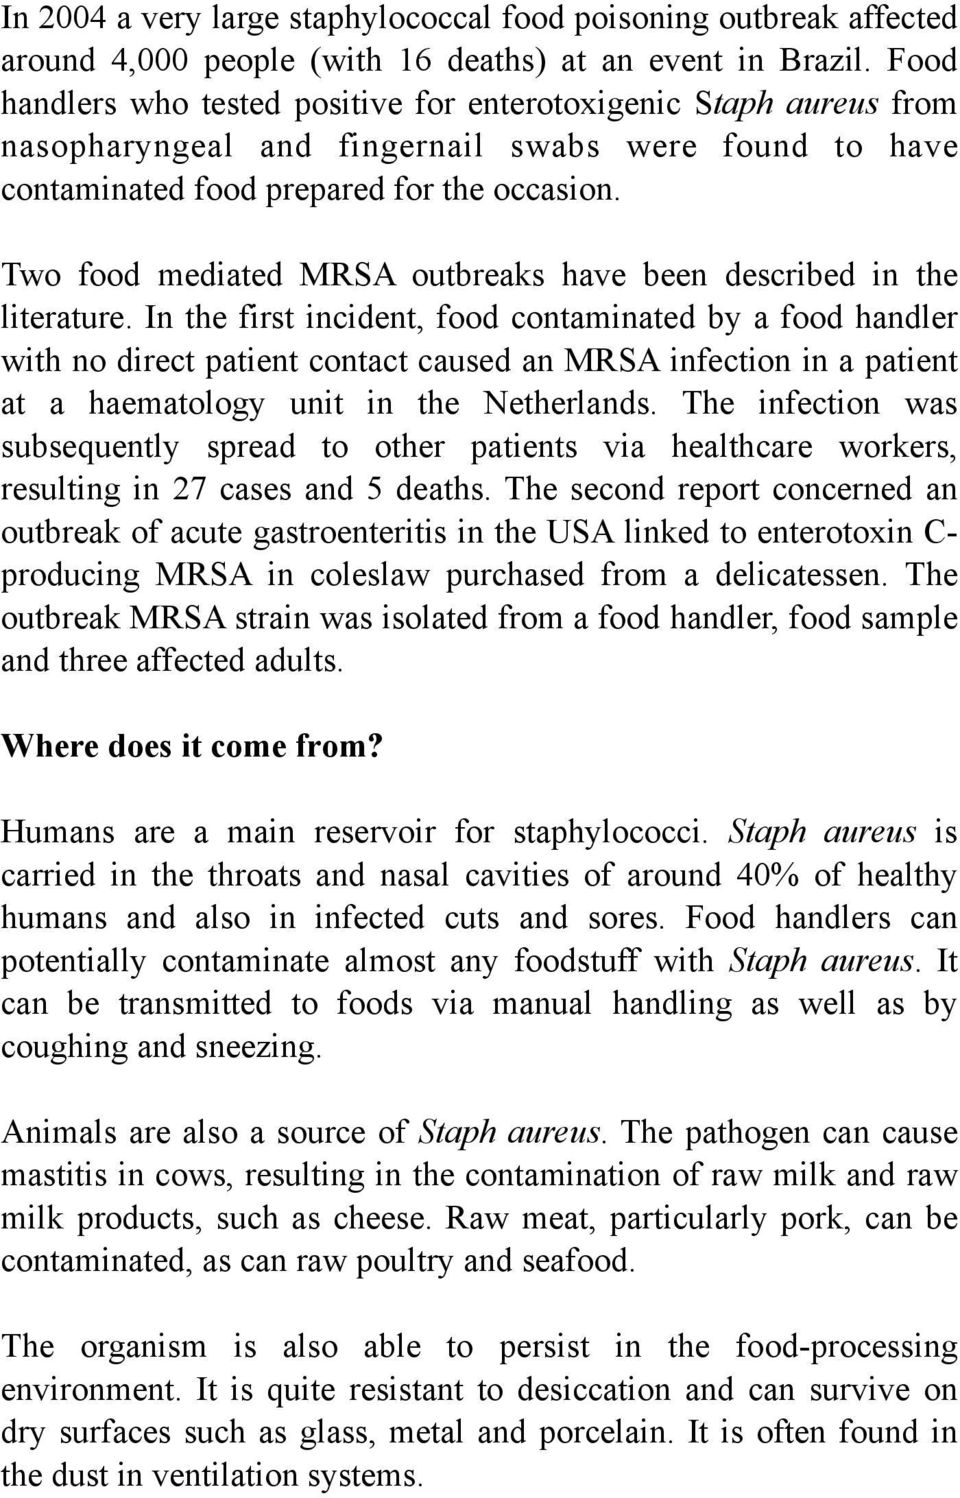 Two food mediated MRSA outbreaks have been described in the literature.